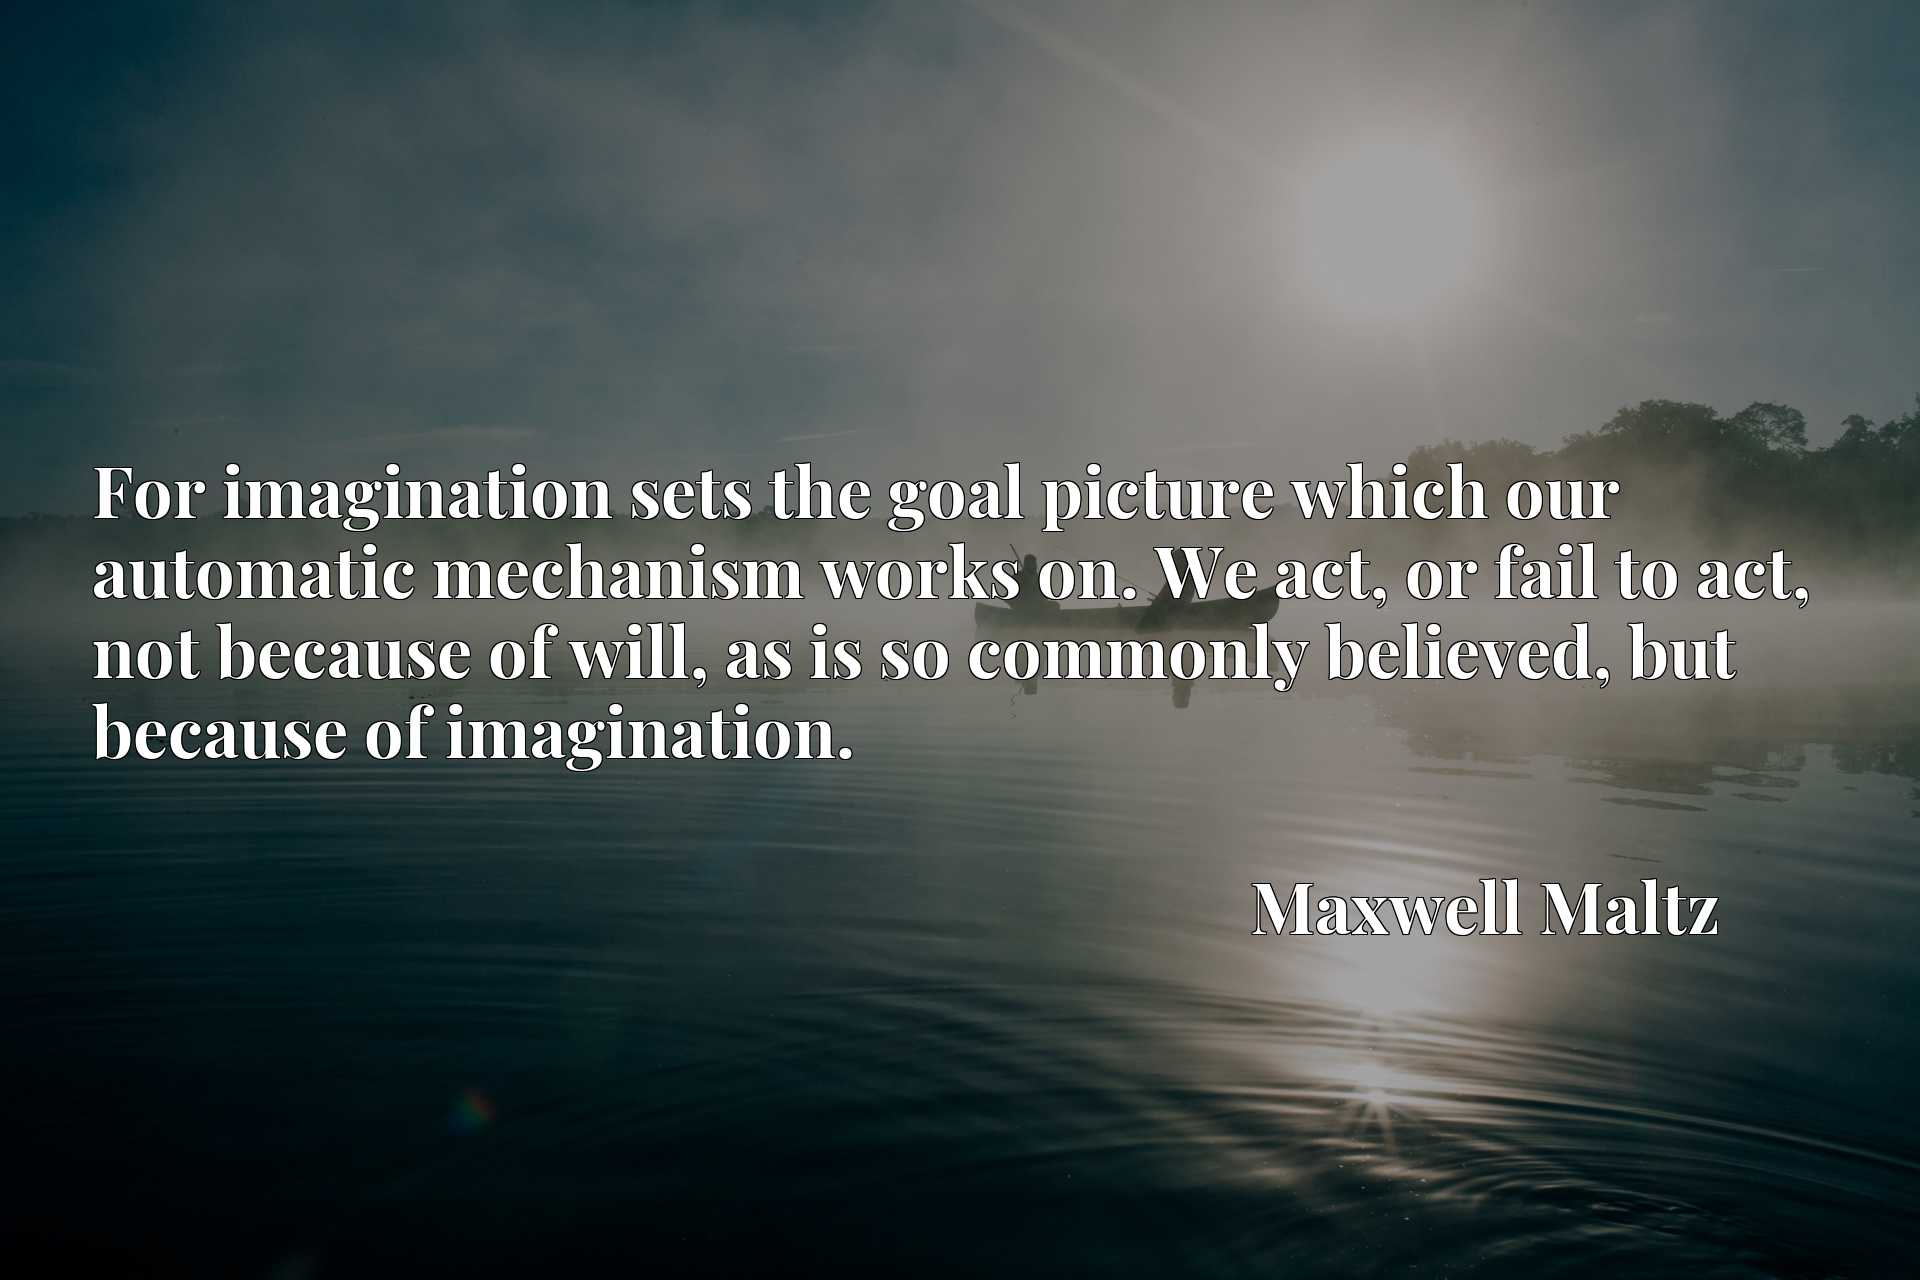 Quote Picture :For imagination sets the goal picture which our automatic mechanism works on. We act, or fail to act, not because of will, as is so commonly believed, but because of imagination.